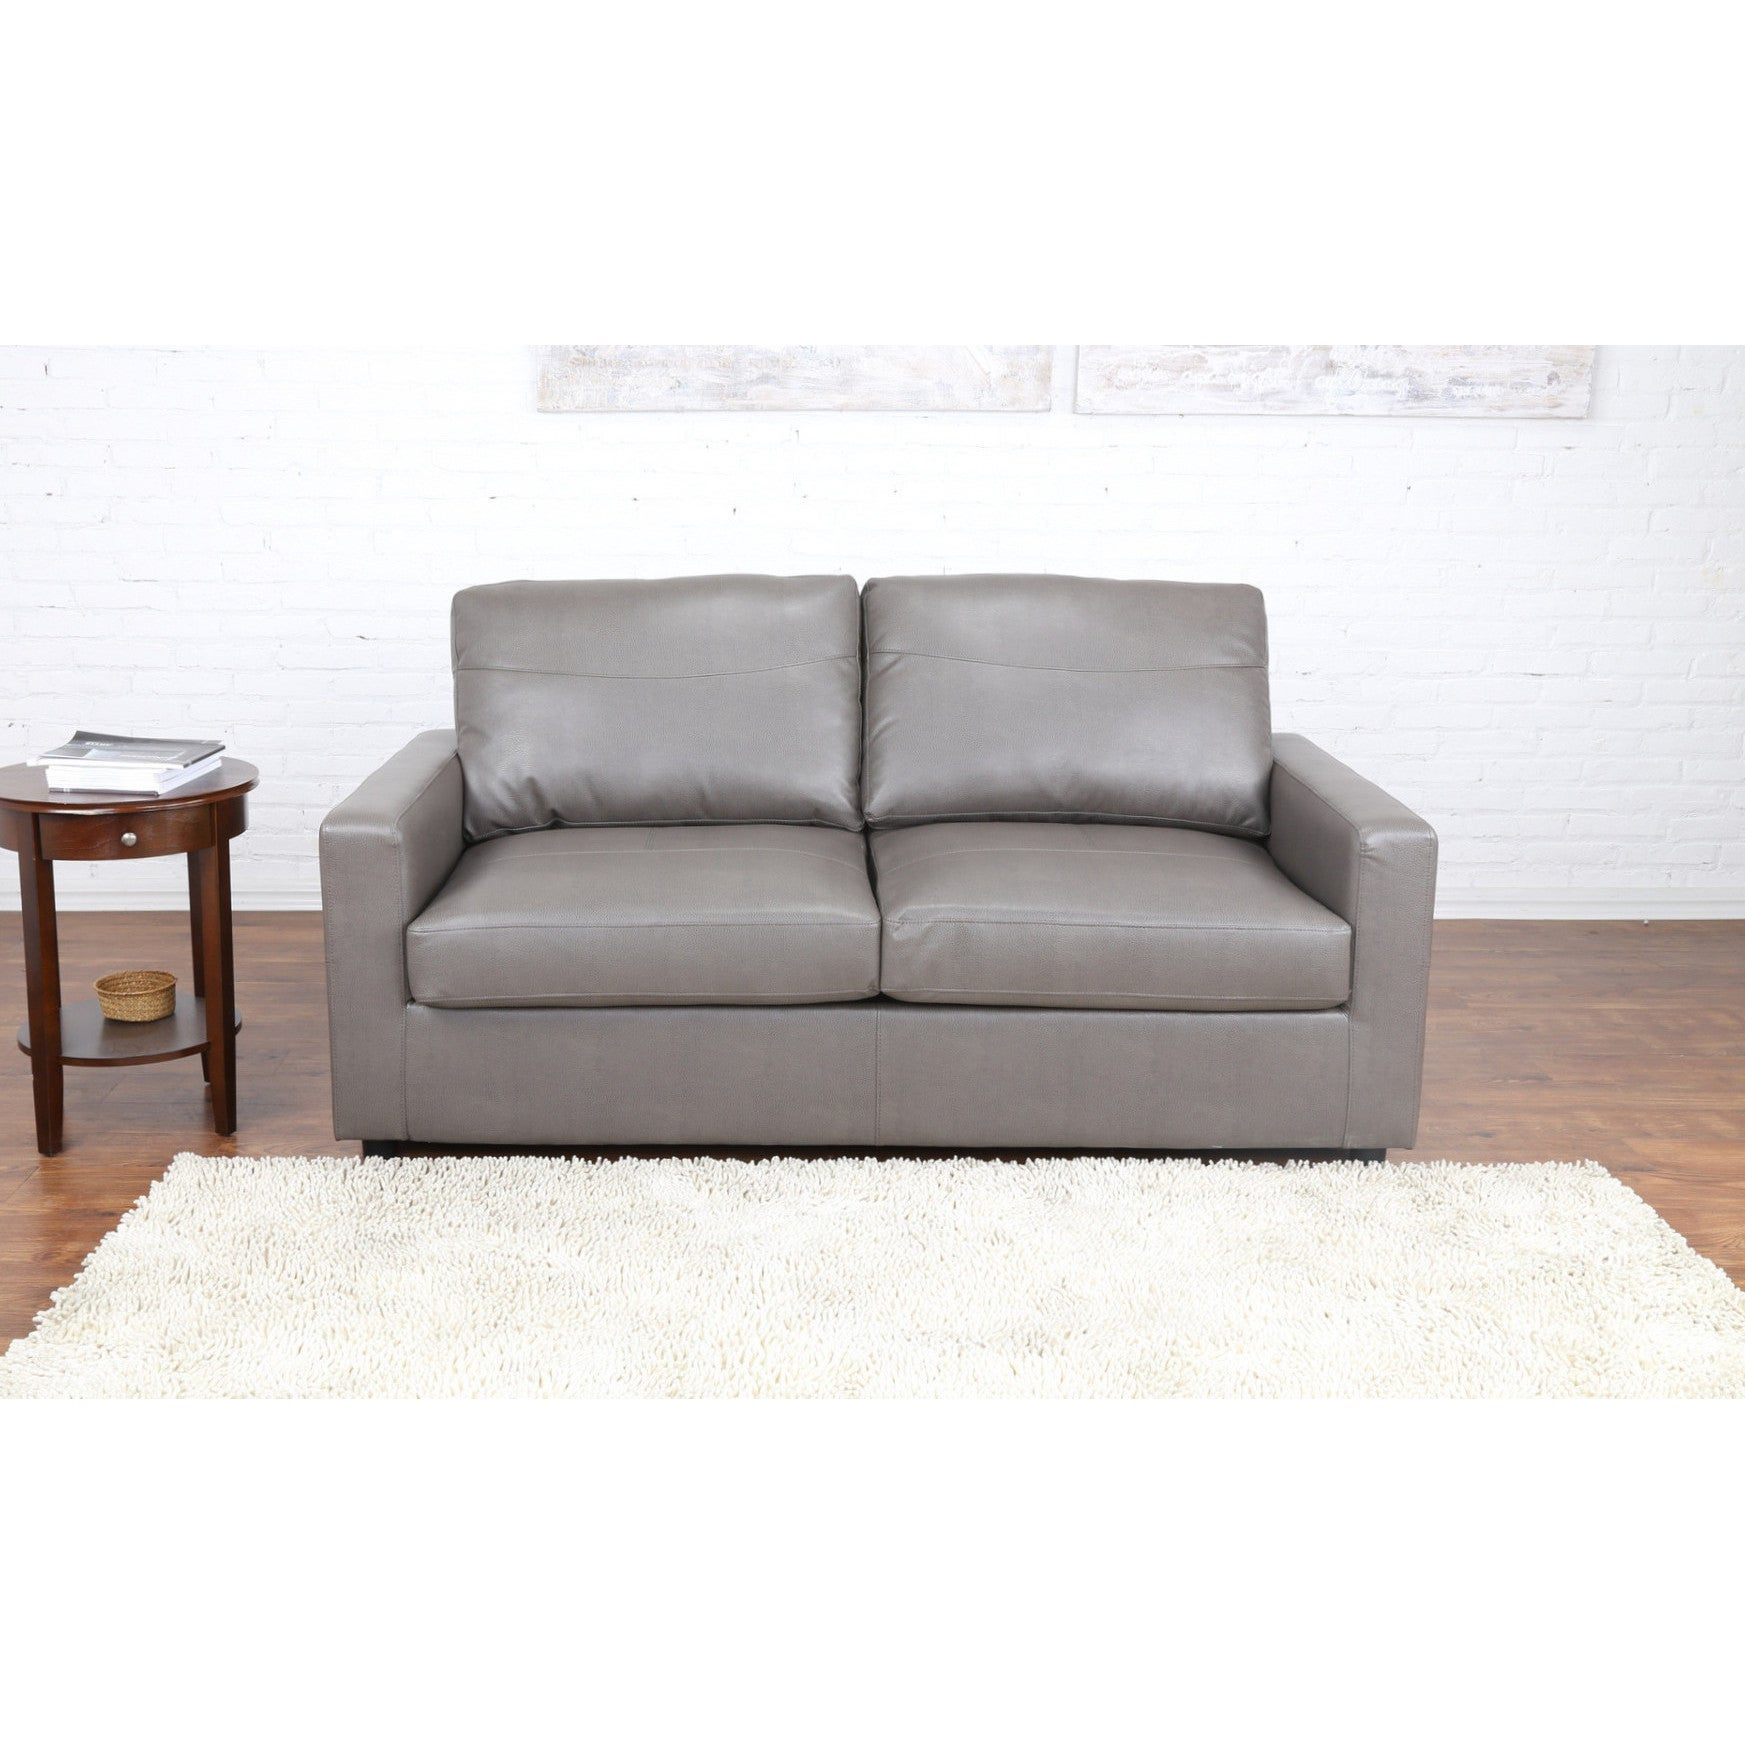 Shop bonded leather sleeper pull out sofa and bed free shipping today overstock com 12070816